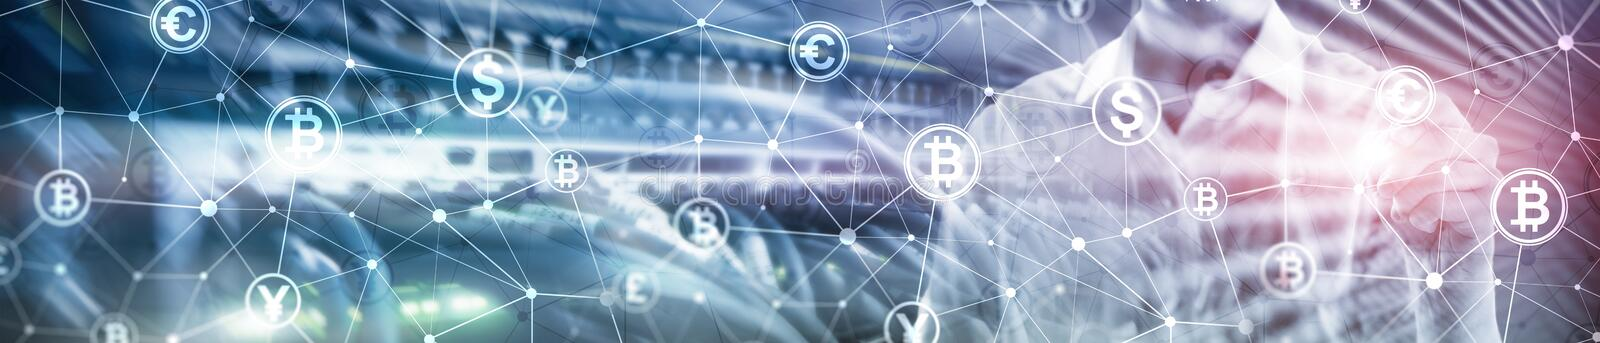 Double exposure Bitcoin and blockchain concept. Digital economy and currency trading. Website header banner. royalty free stock photo